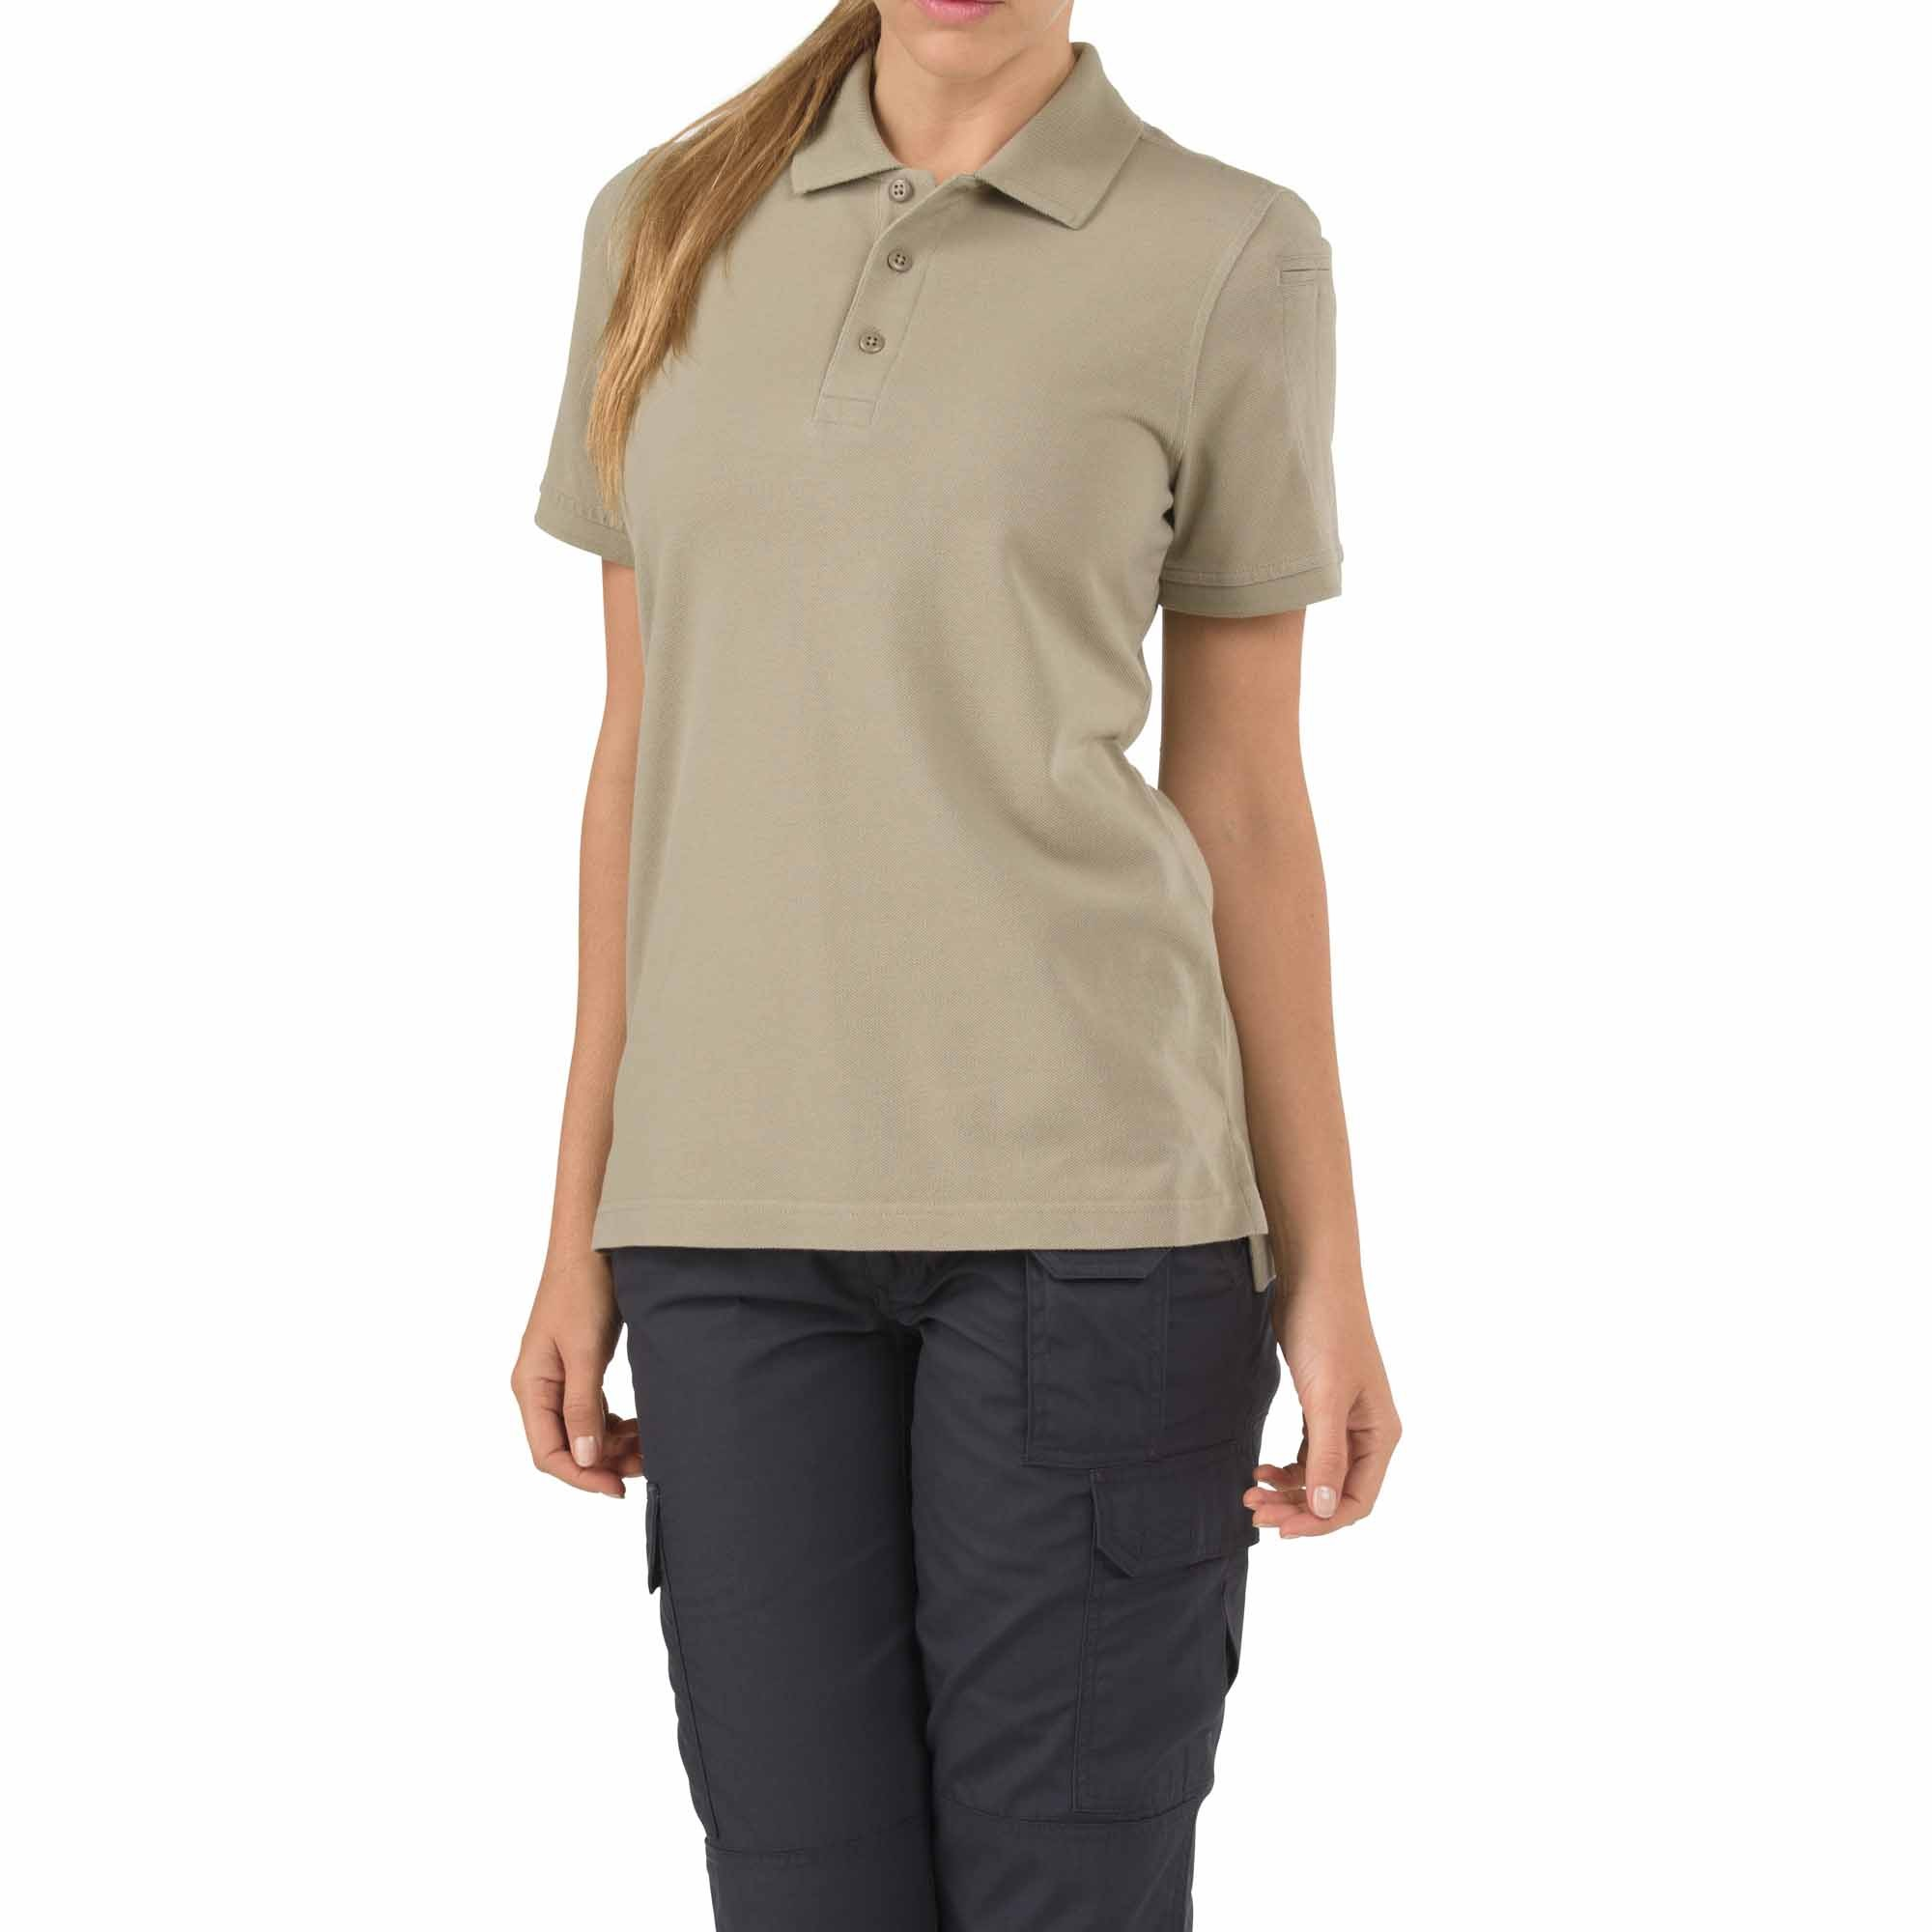 5.11 Womens Professional Polo Shirt 61166